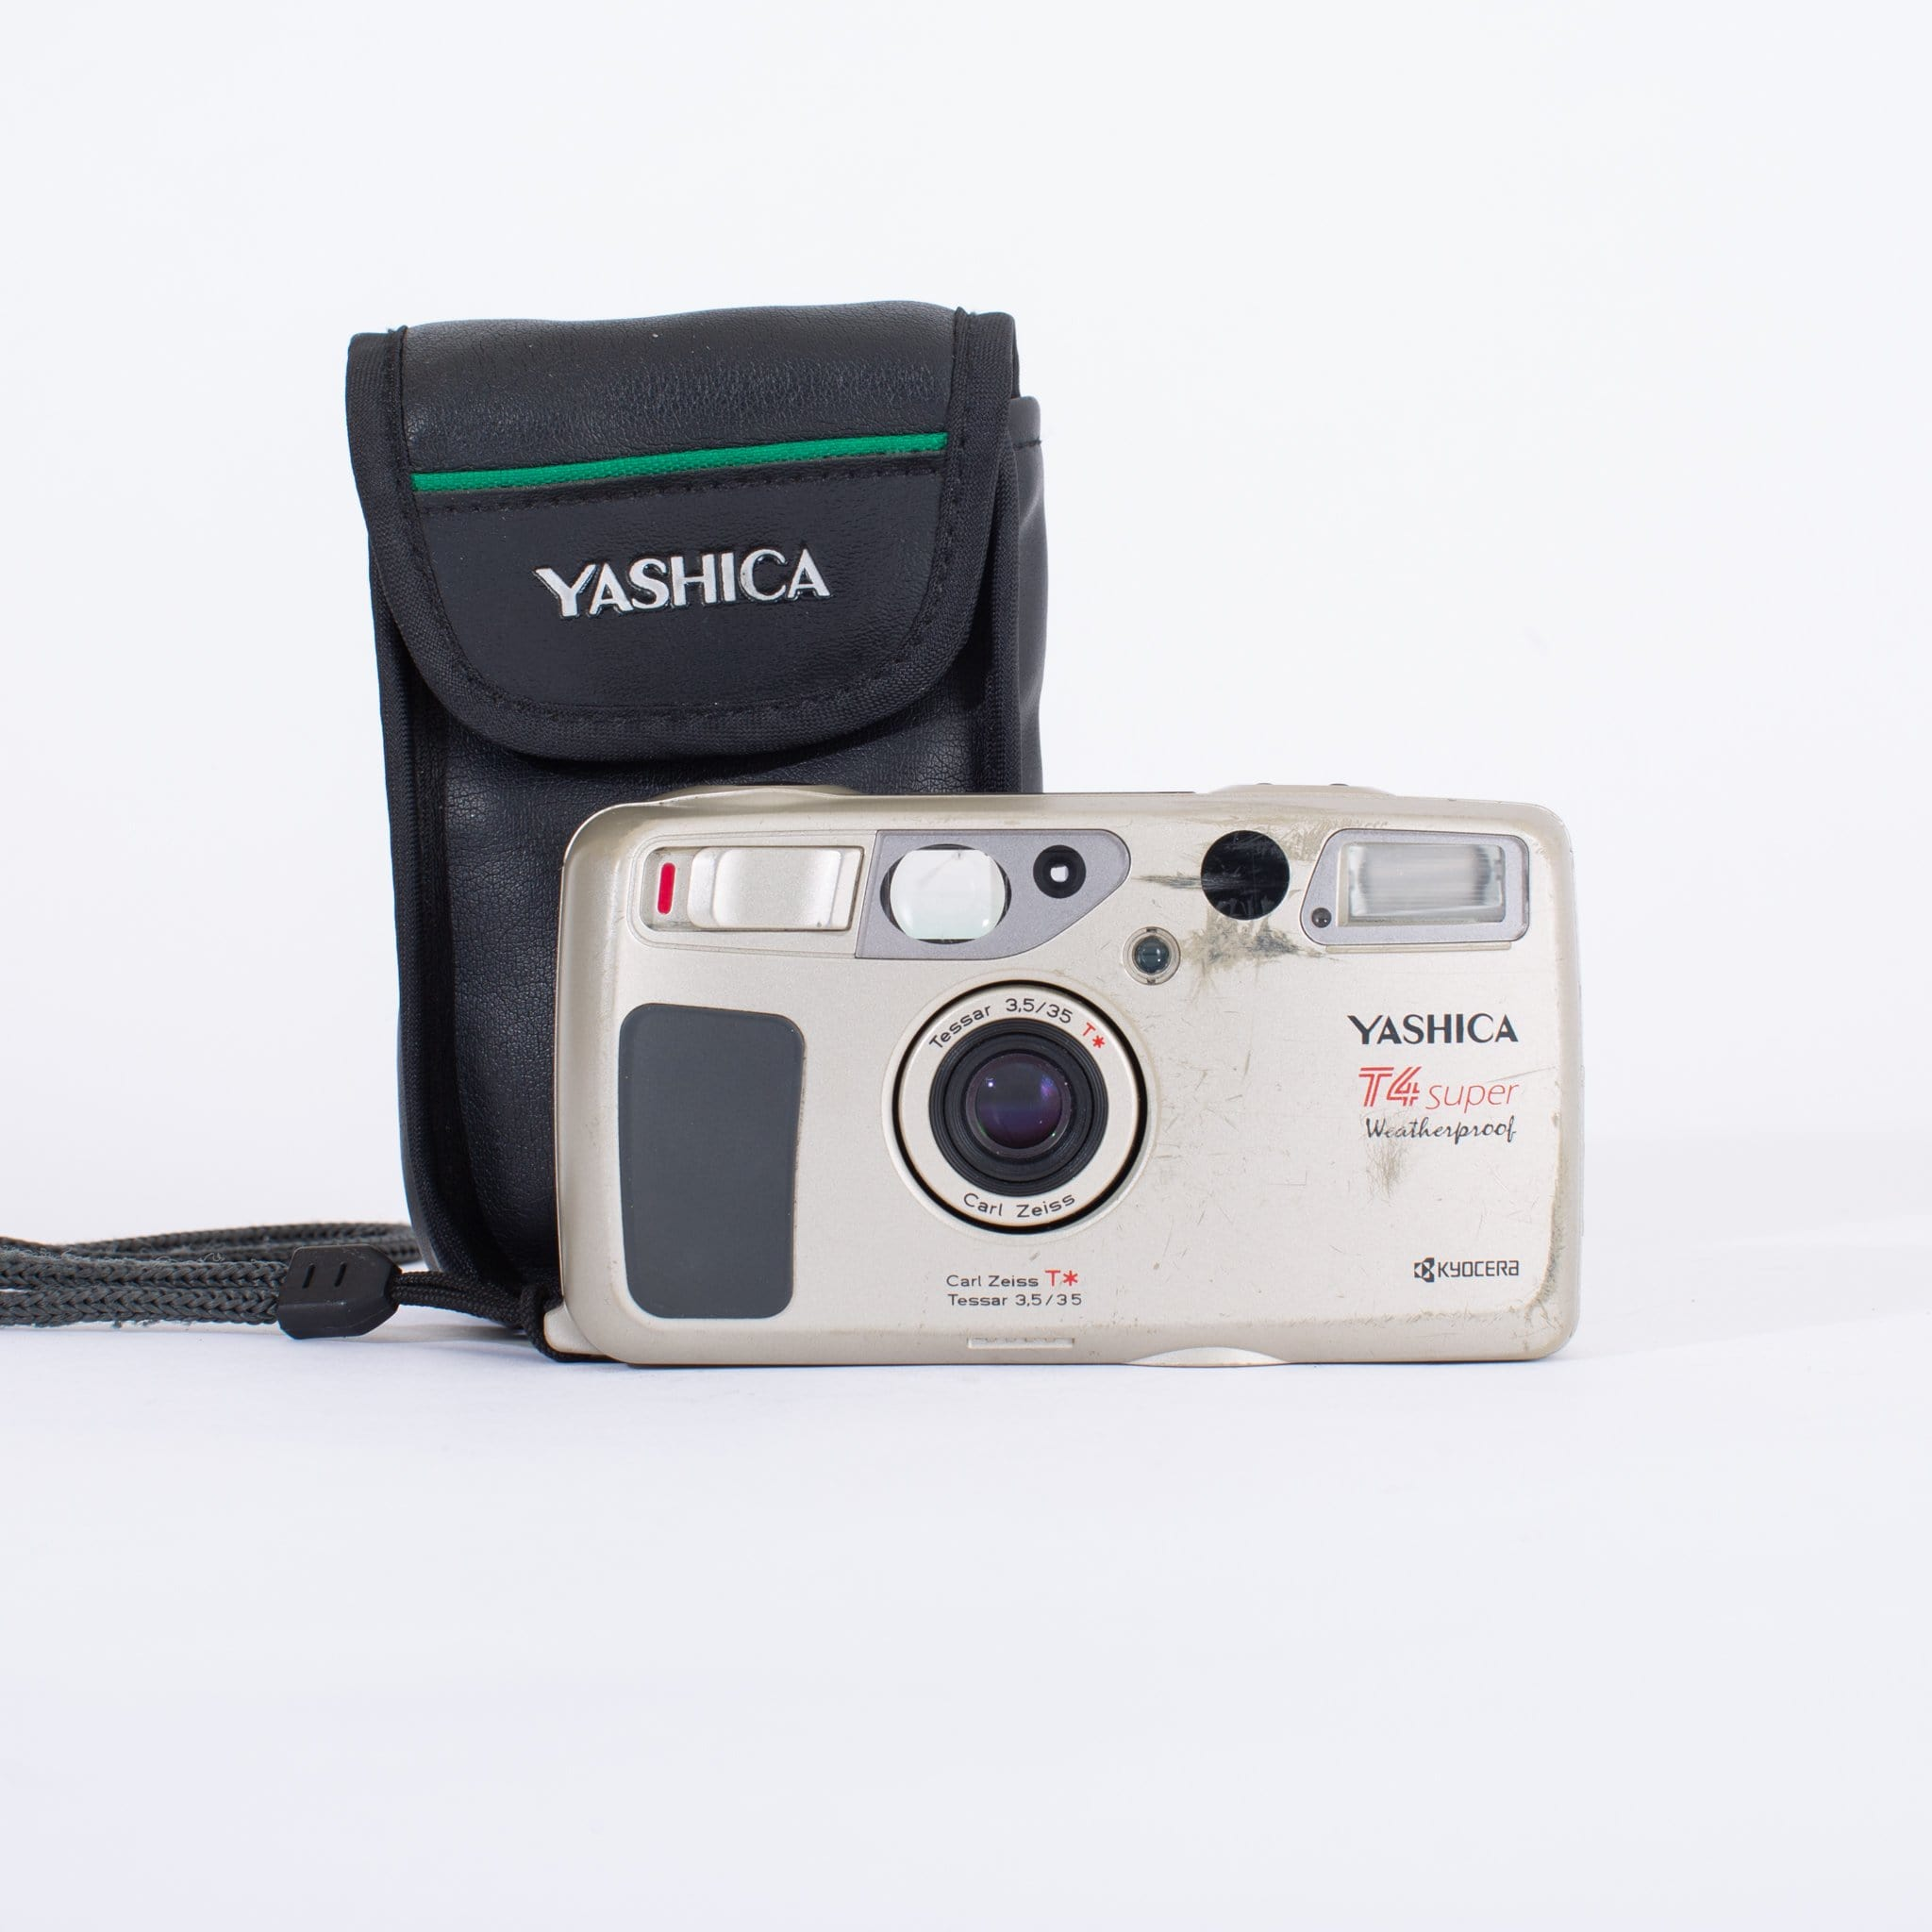 Yashica T4 Super with 35mm f/3.5 (Cosmetic Damage)